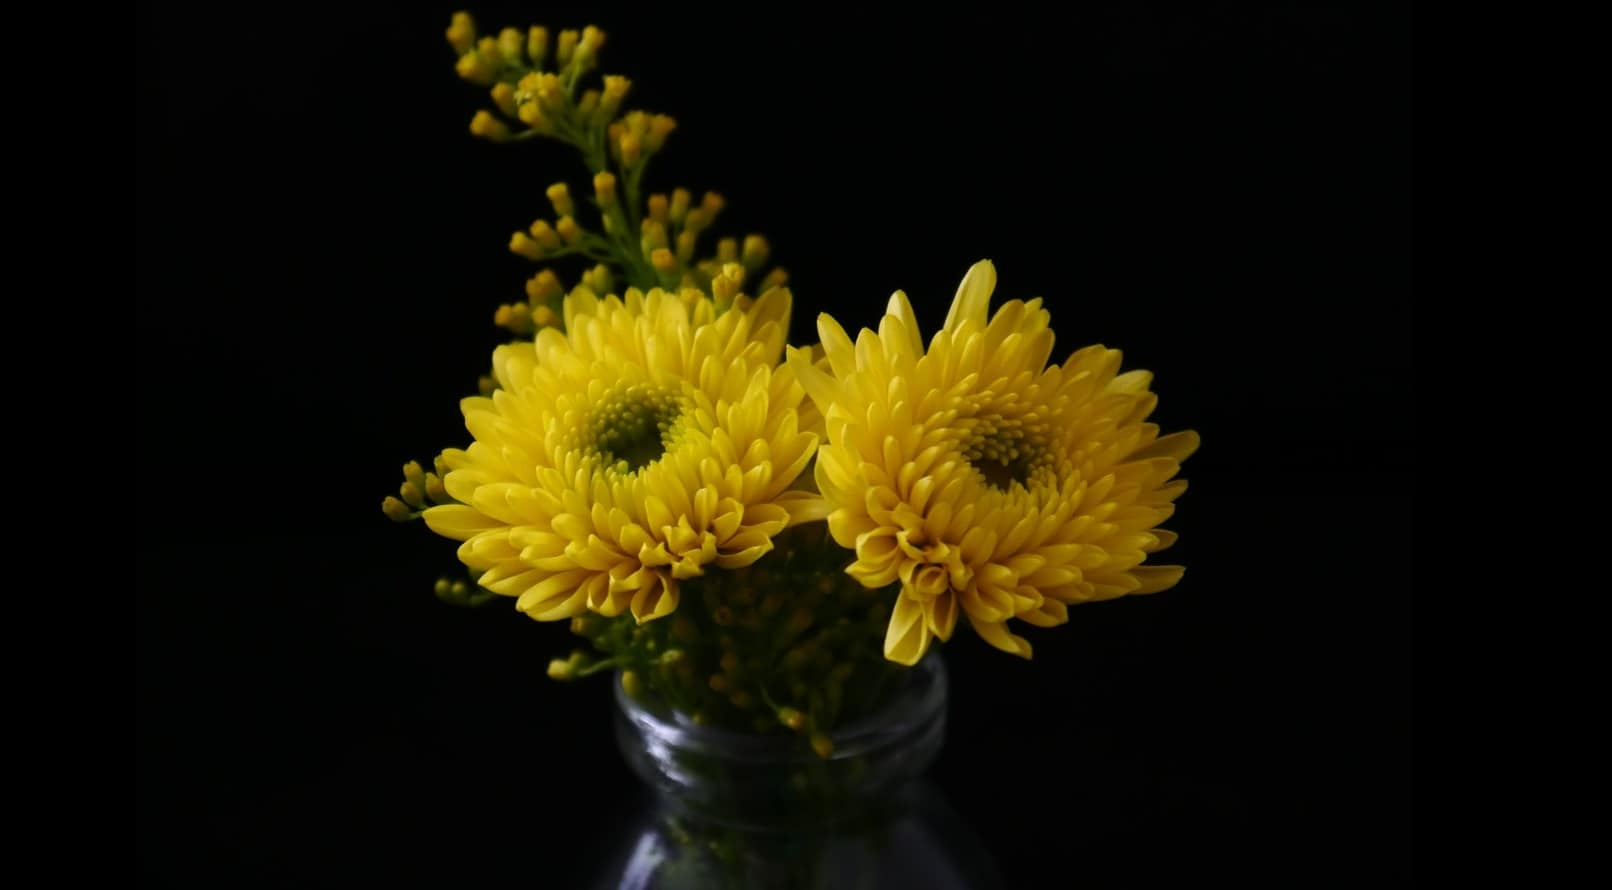 seven-stress-relief-plants-6-chrysanthemum